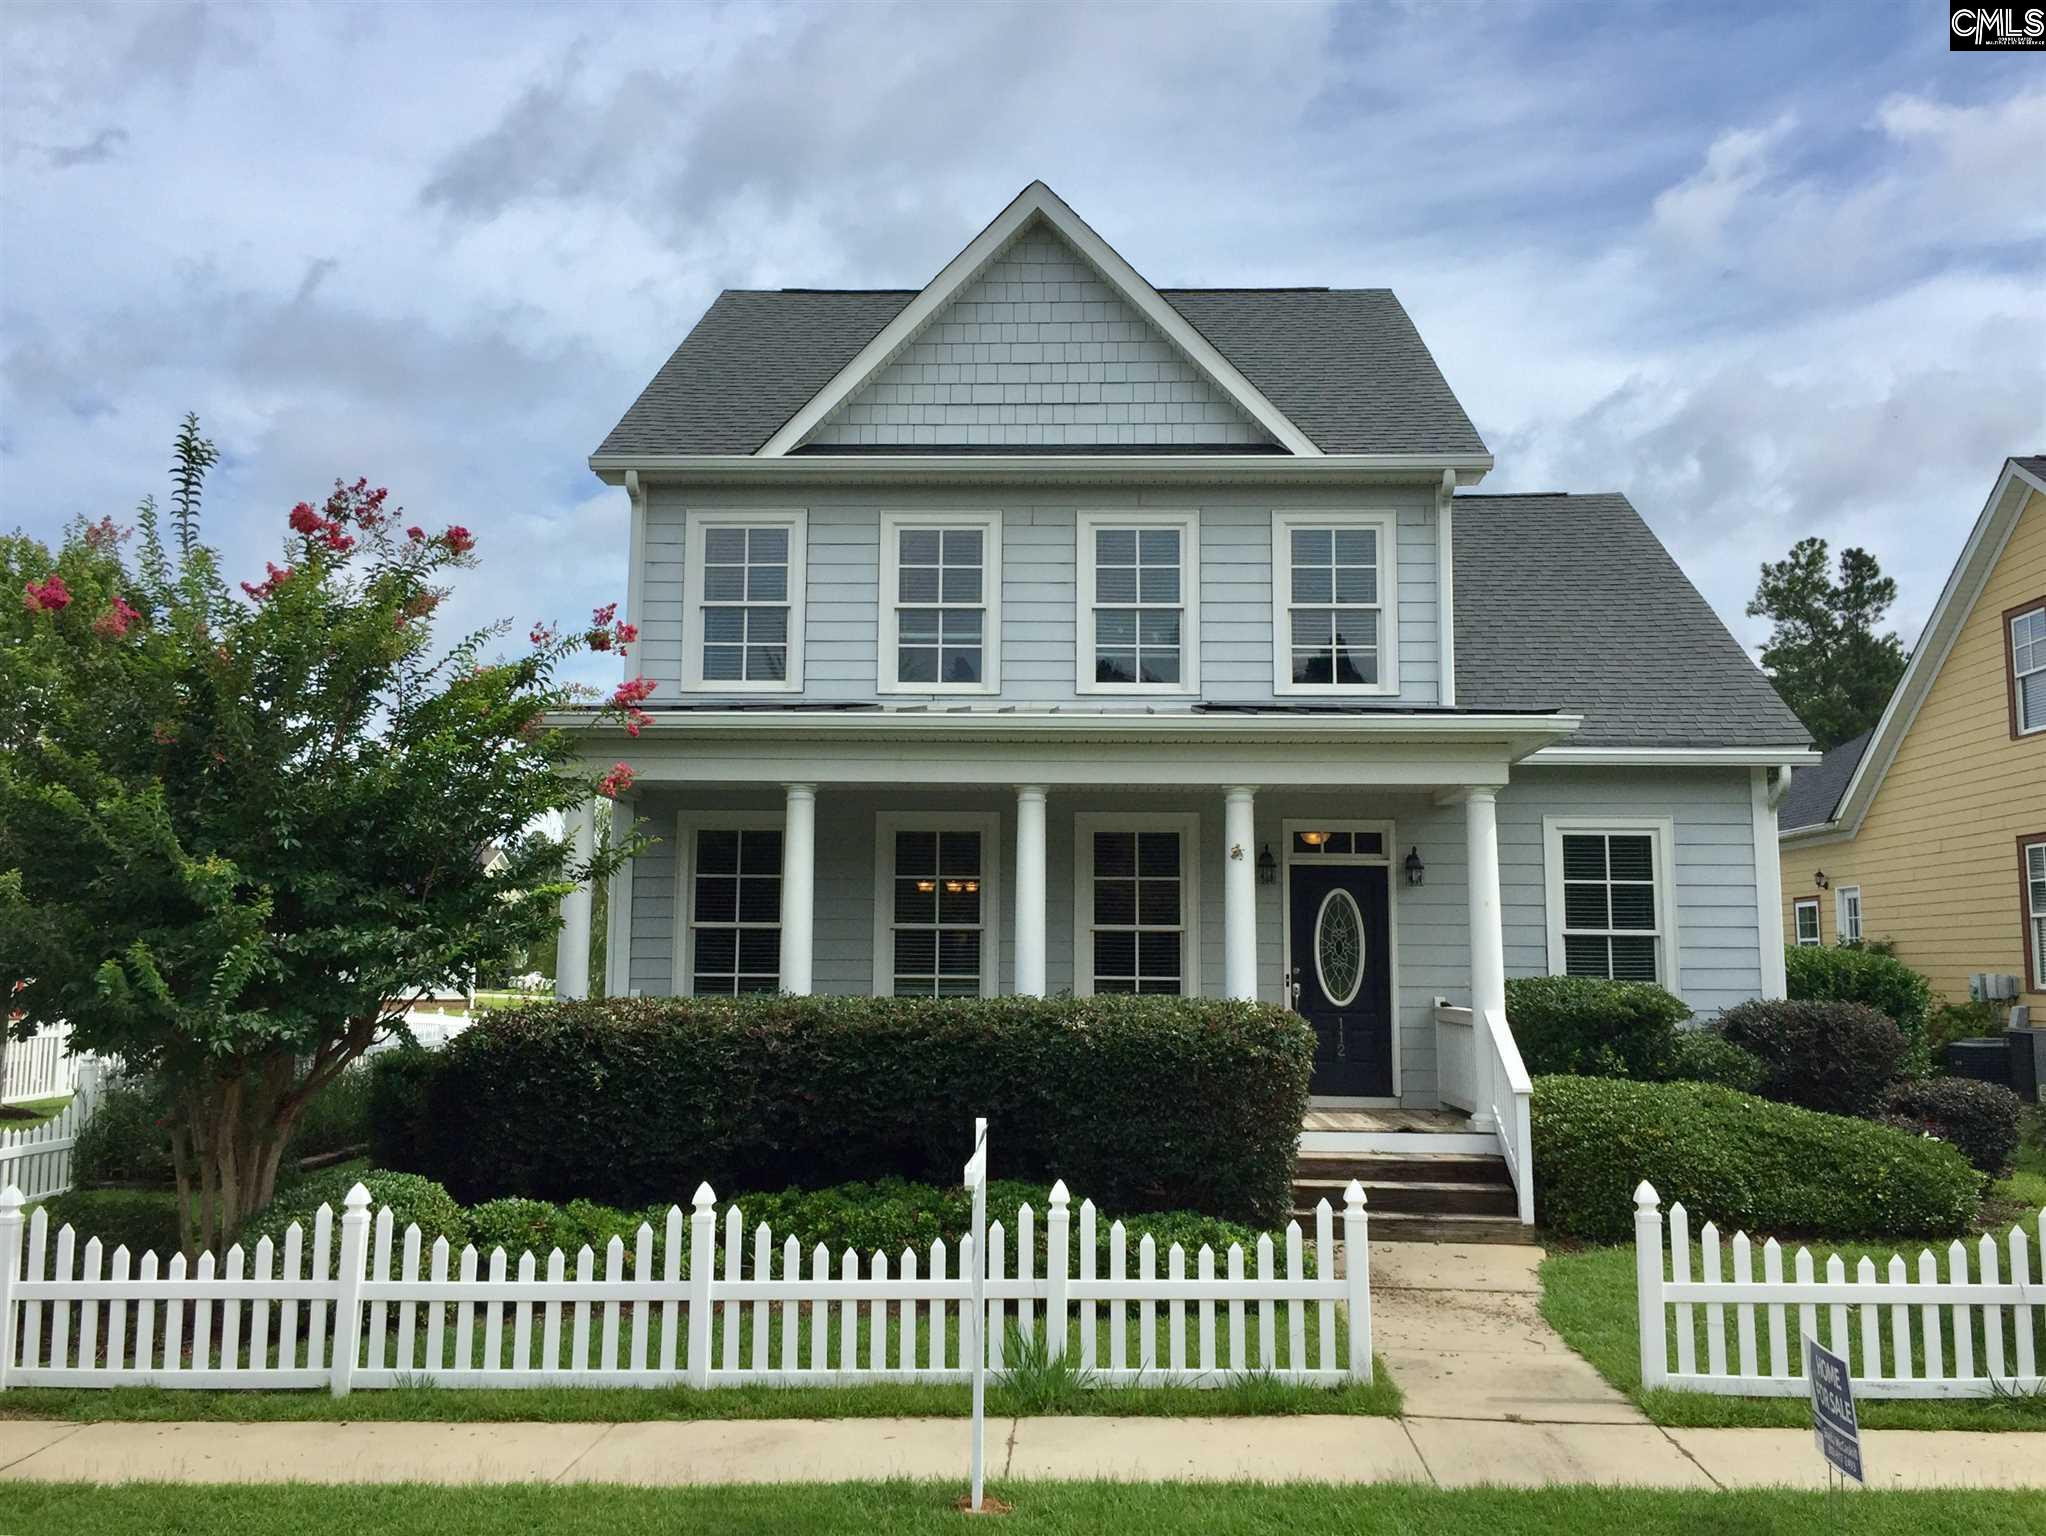 112 Garden Gate Lexington, SC 29072